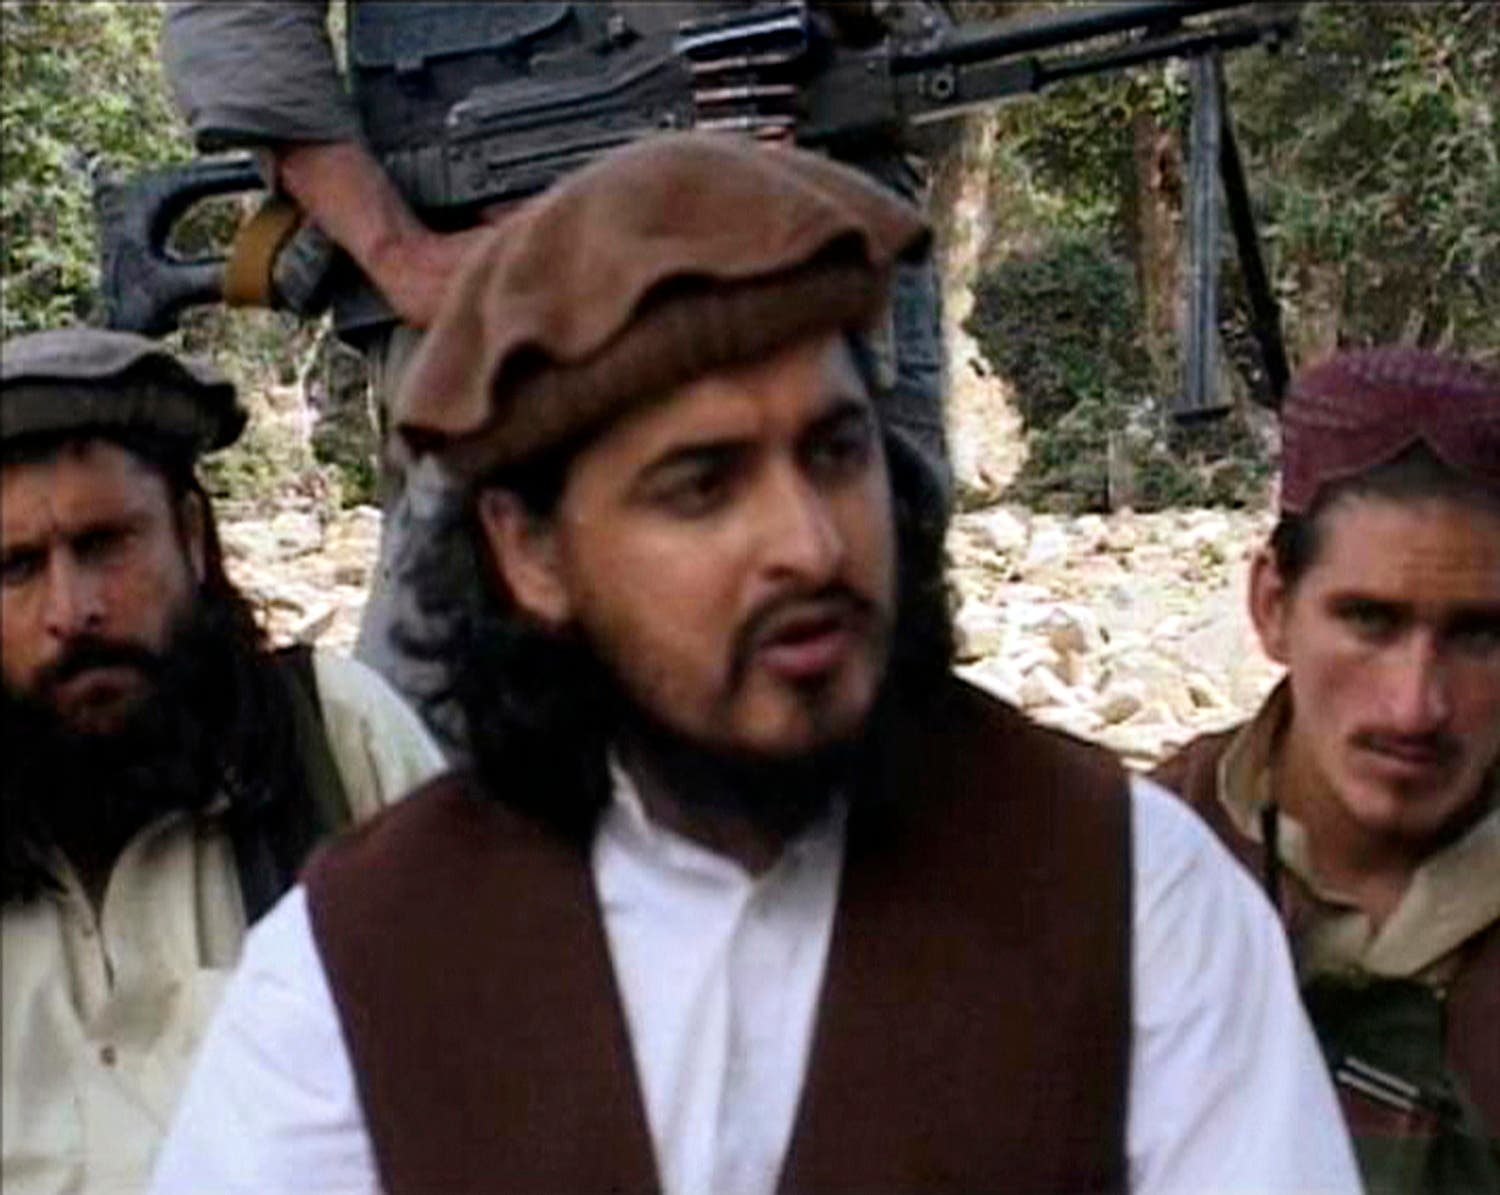 Pakistani Taliban chief Hakimullah Mehsud (C) sits with other militants in South Waziristan, in this file still image taken from video shot October 4, 2009 and released Oct. 5, 2009. (Reuters)